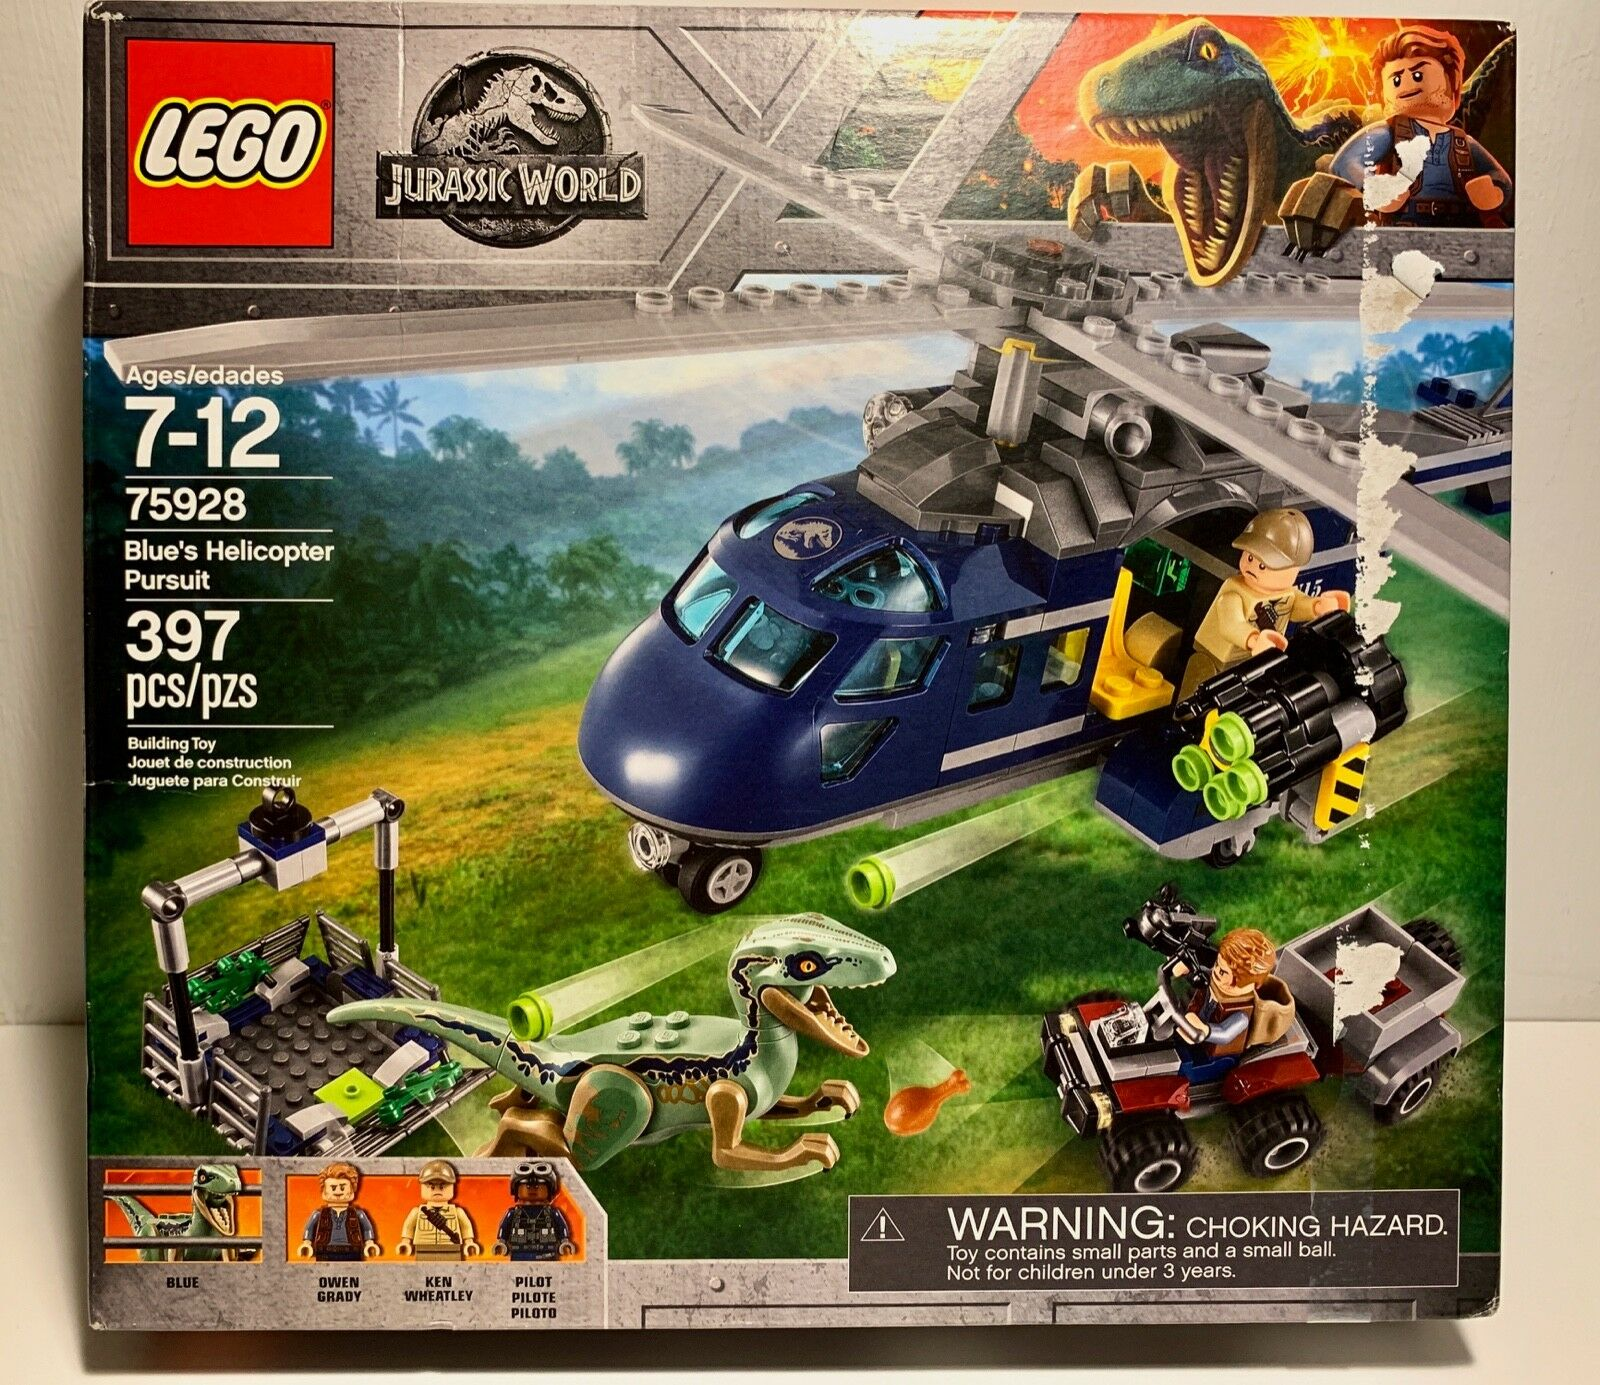 LEGO Jurassic World Blau's Helicopter Pursuit 2018 (75928) Read Sealed Box Wear